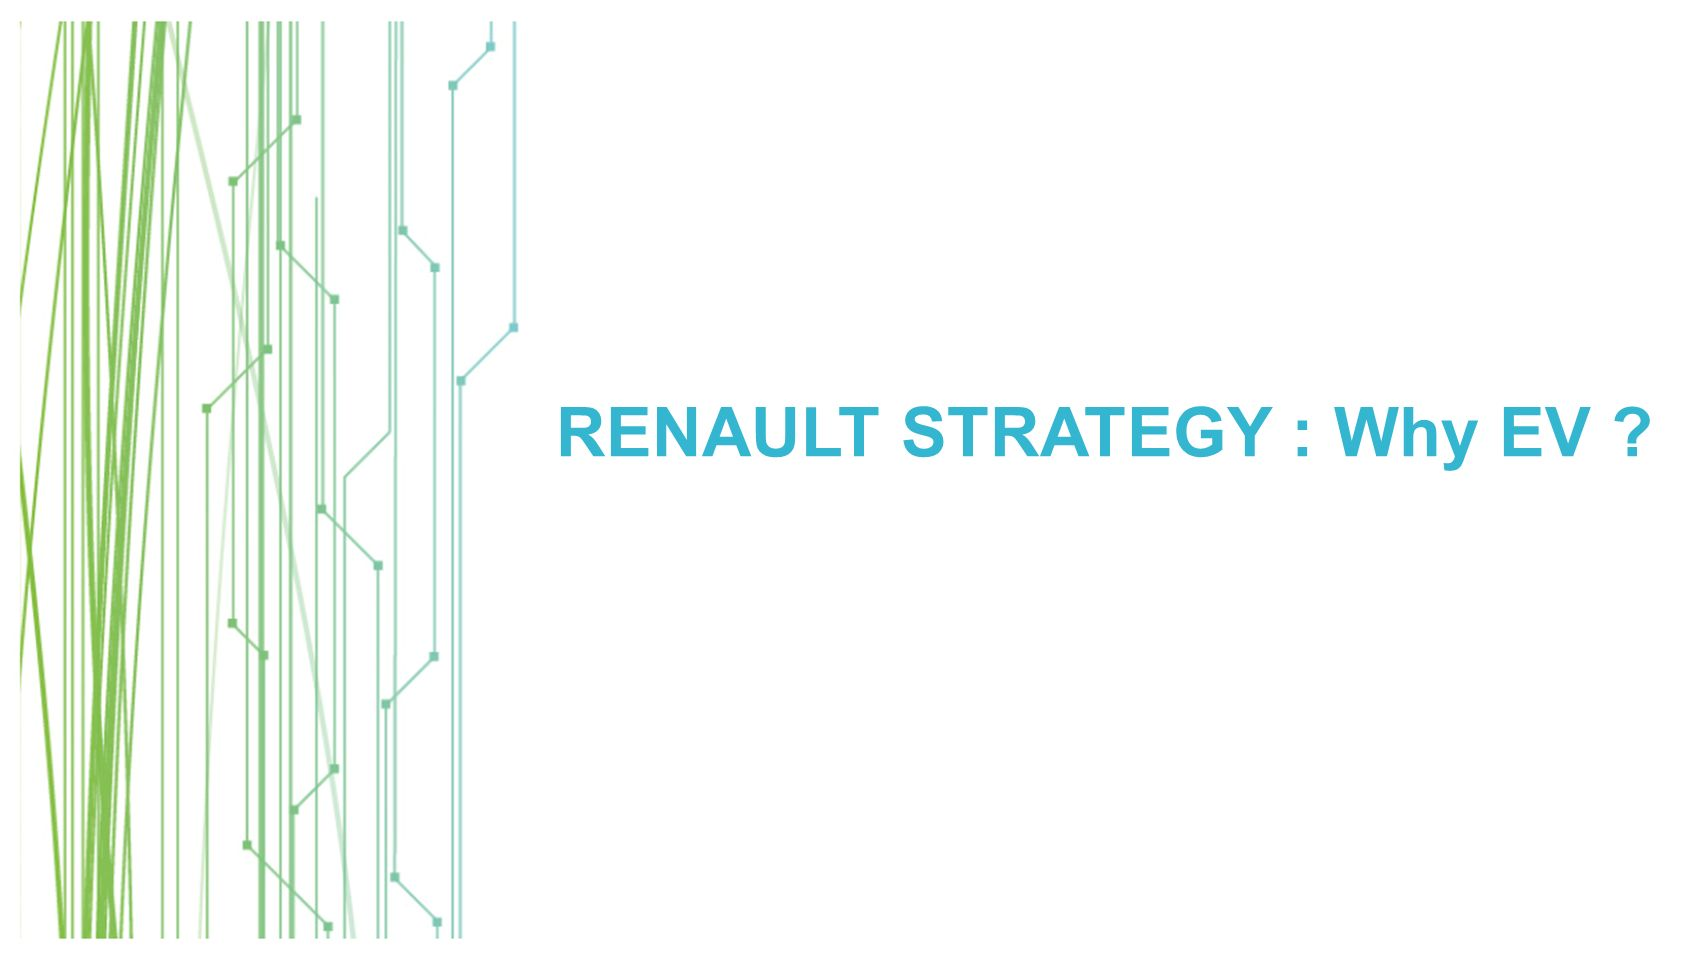 RENAULT STRATEGY : Why EV ?